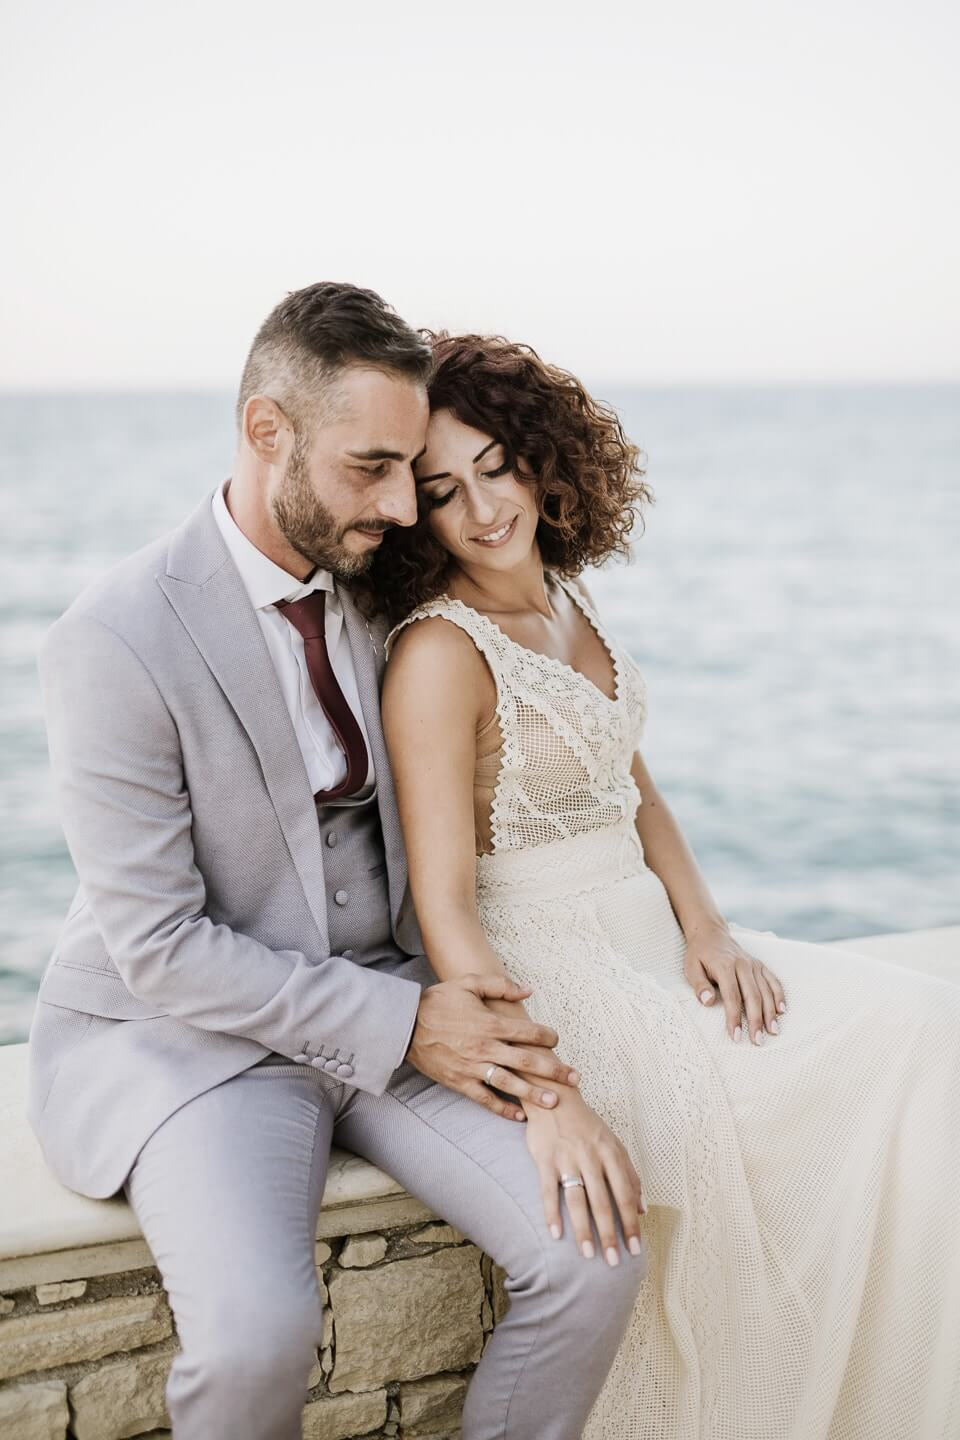 Irini Koronaki Professional Wedding Photography Photographer Crete Greece